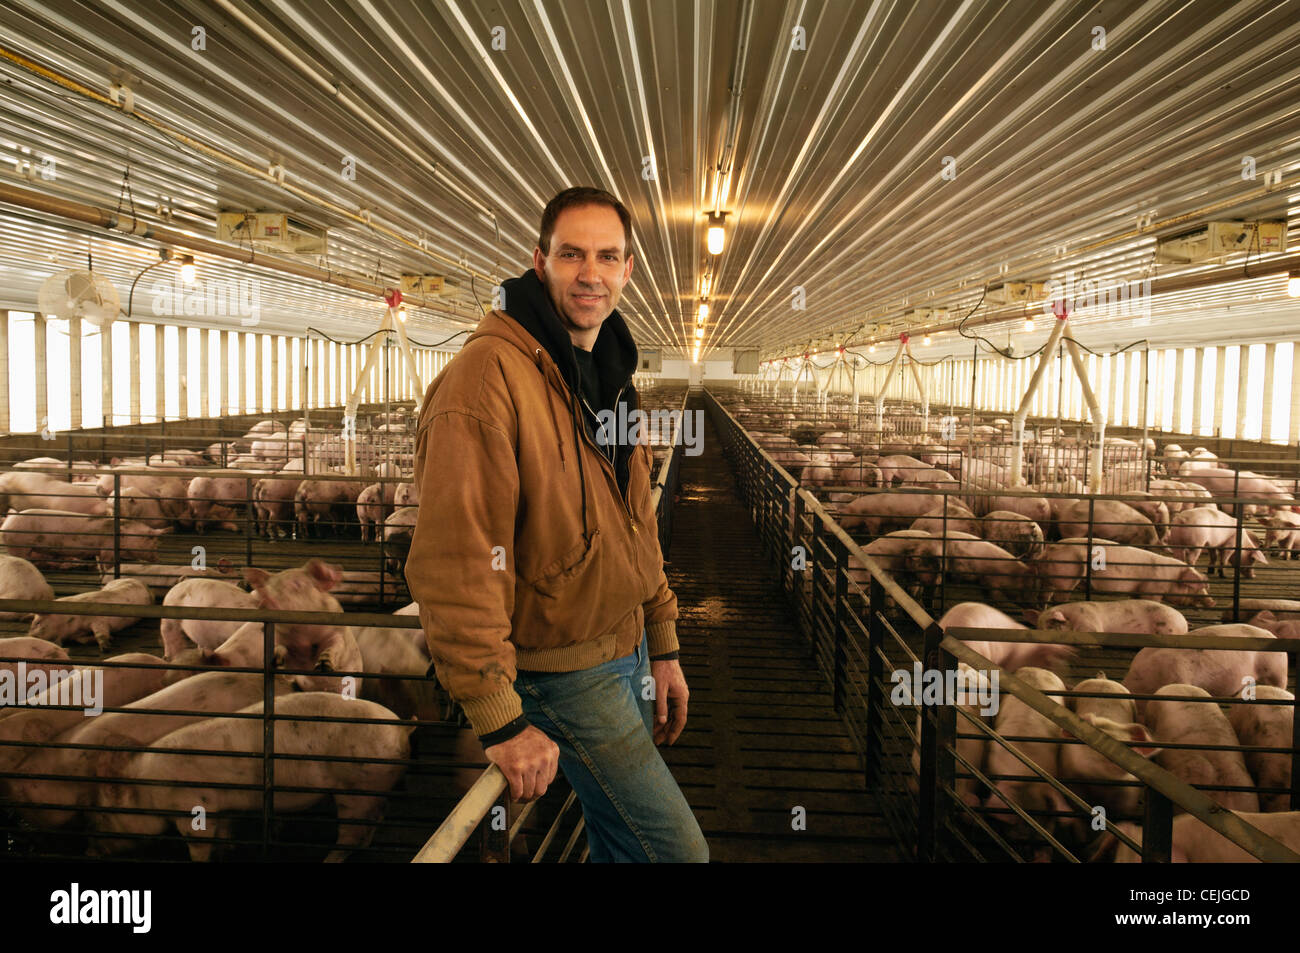 Agriculture - A pork producer poses in his hog confinement facility / Central Iowa, USA. - Stock Image